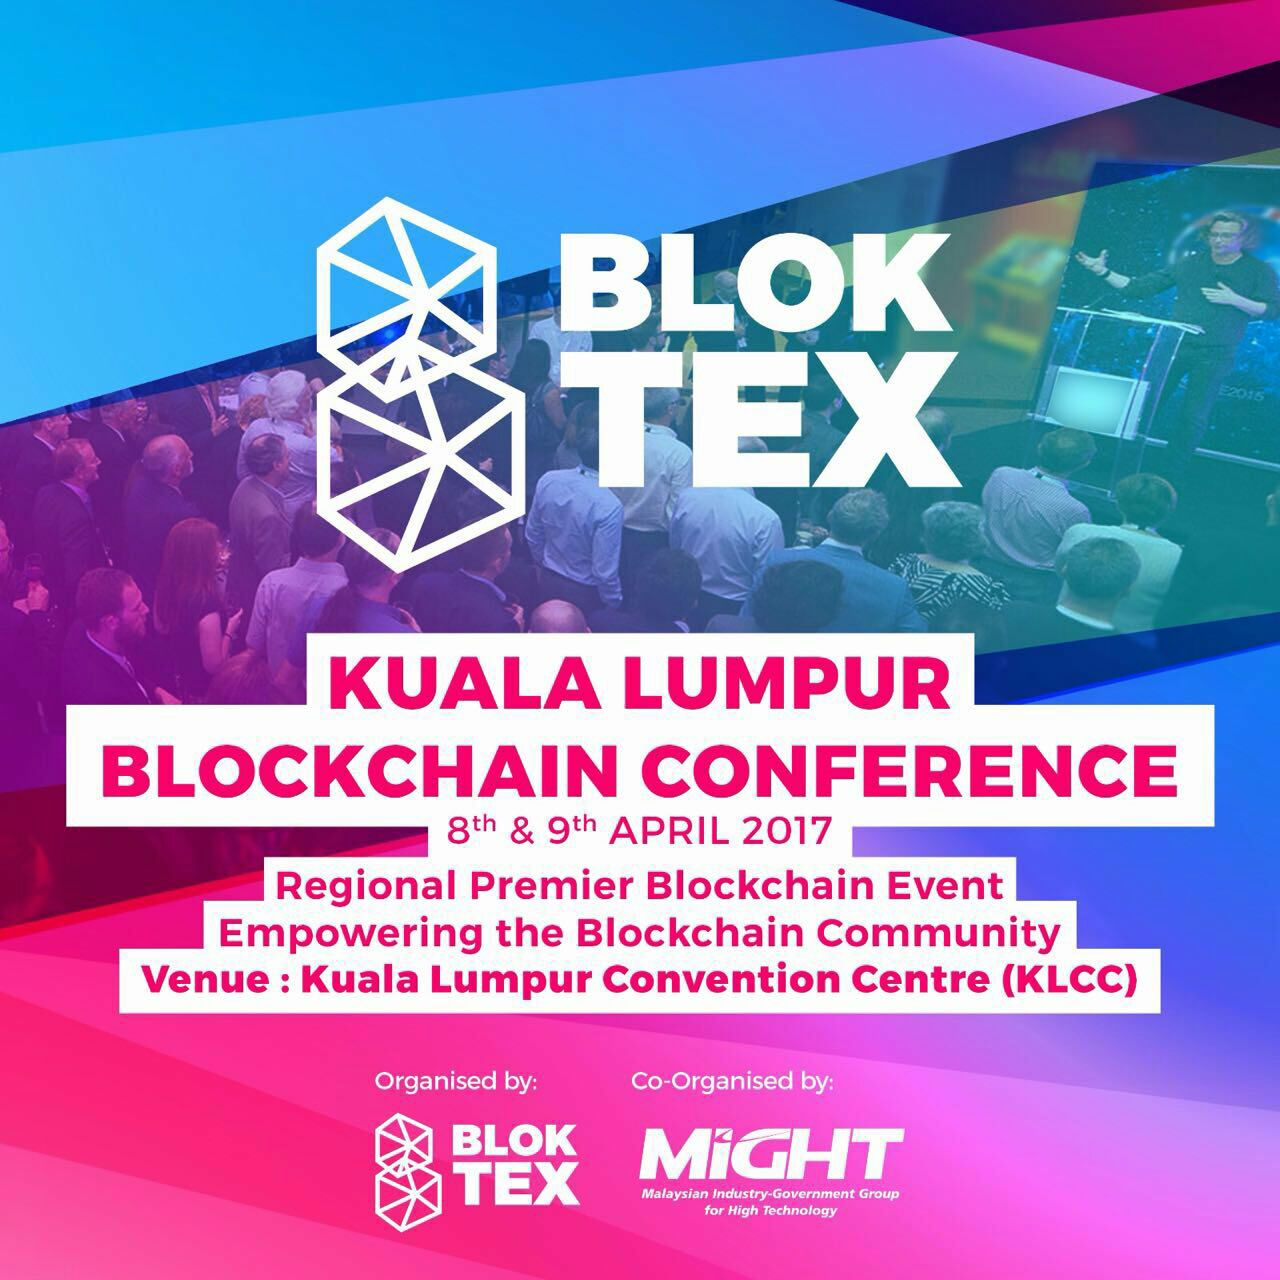 BLOKTEX Conference in Kuala Lampur,Malaysia